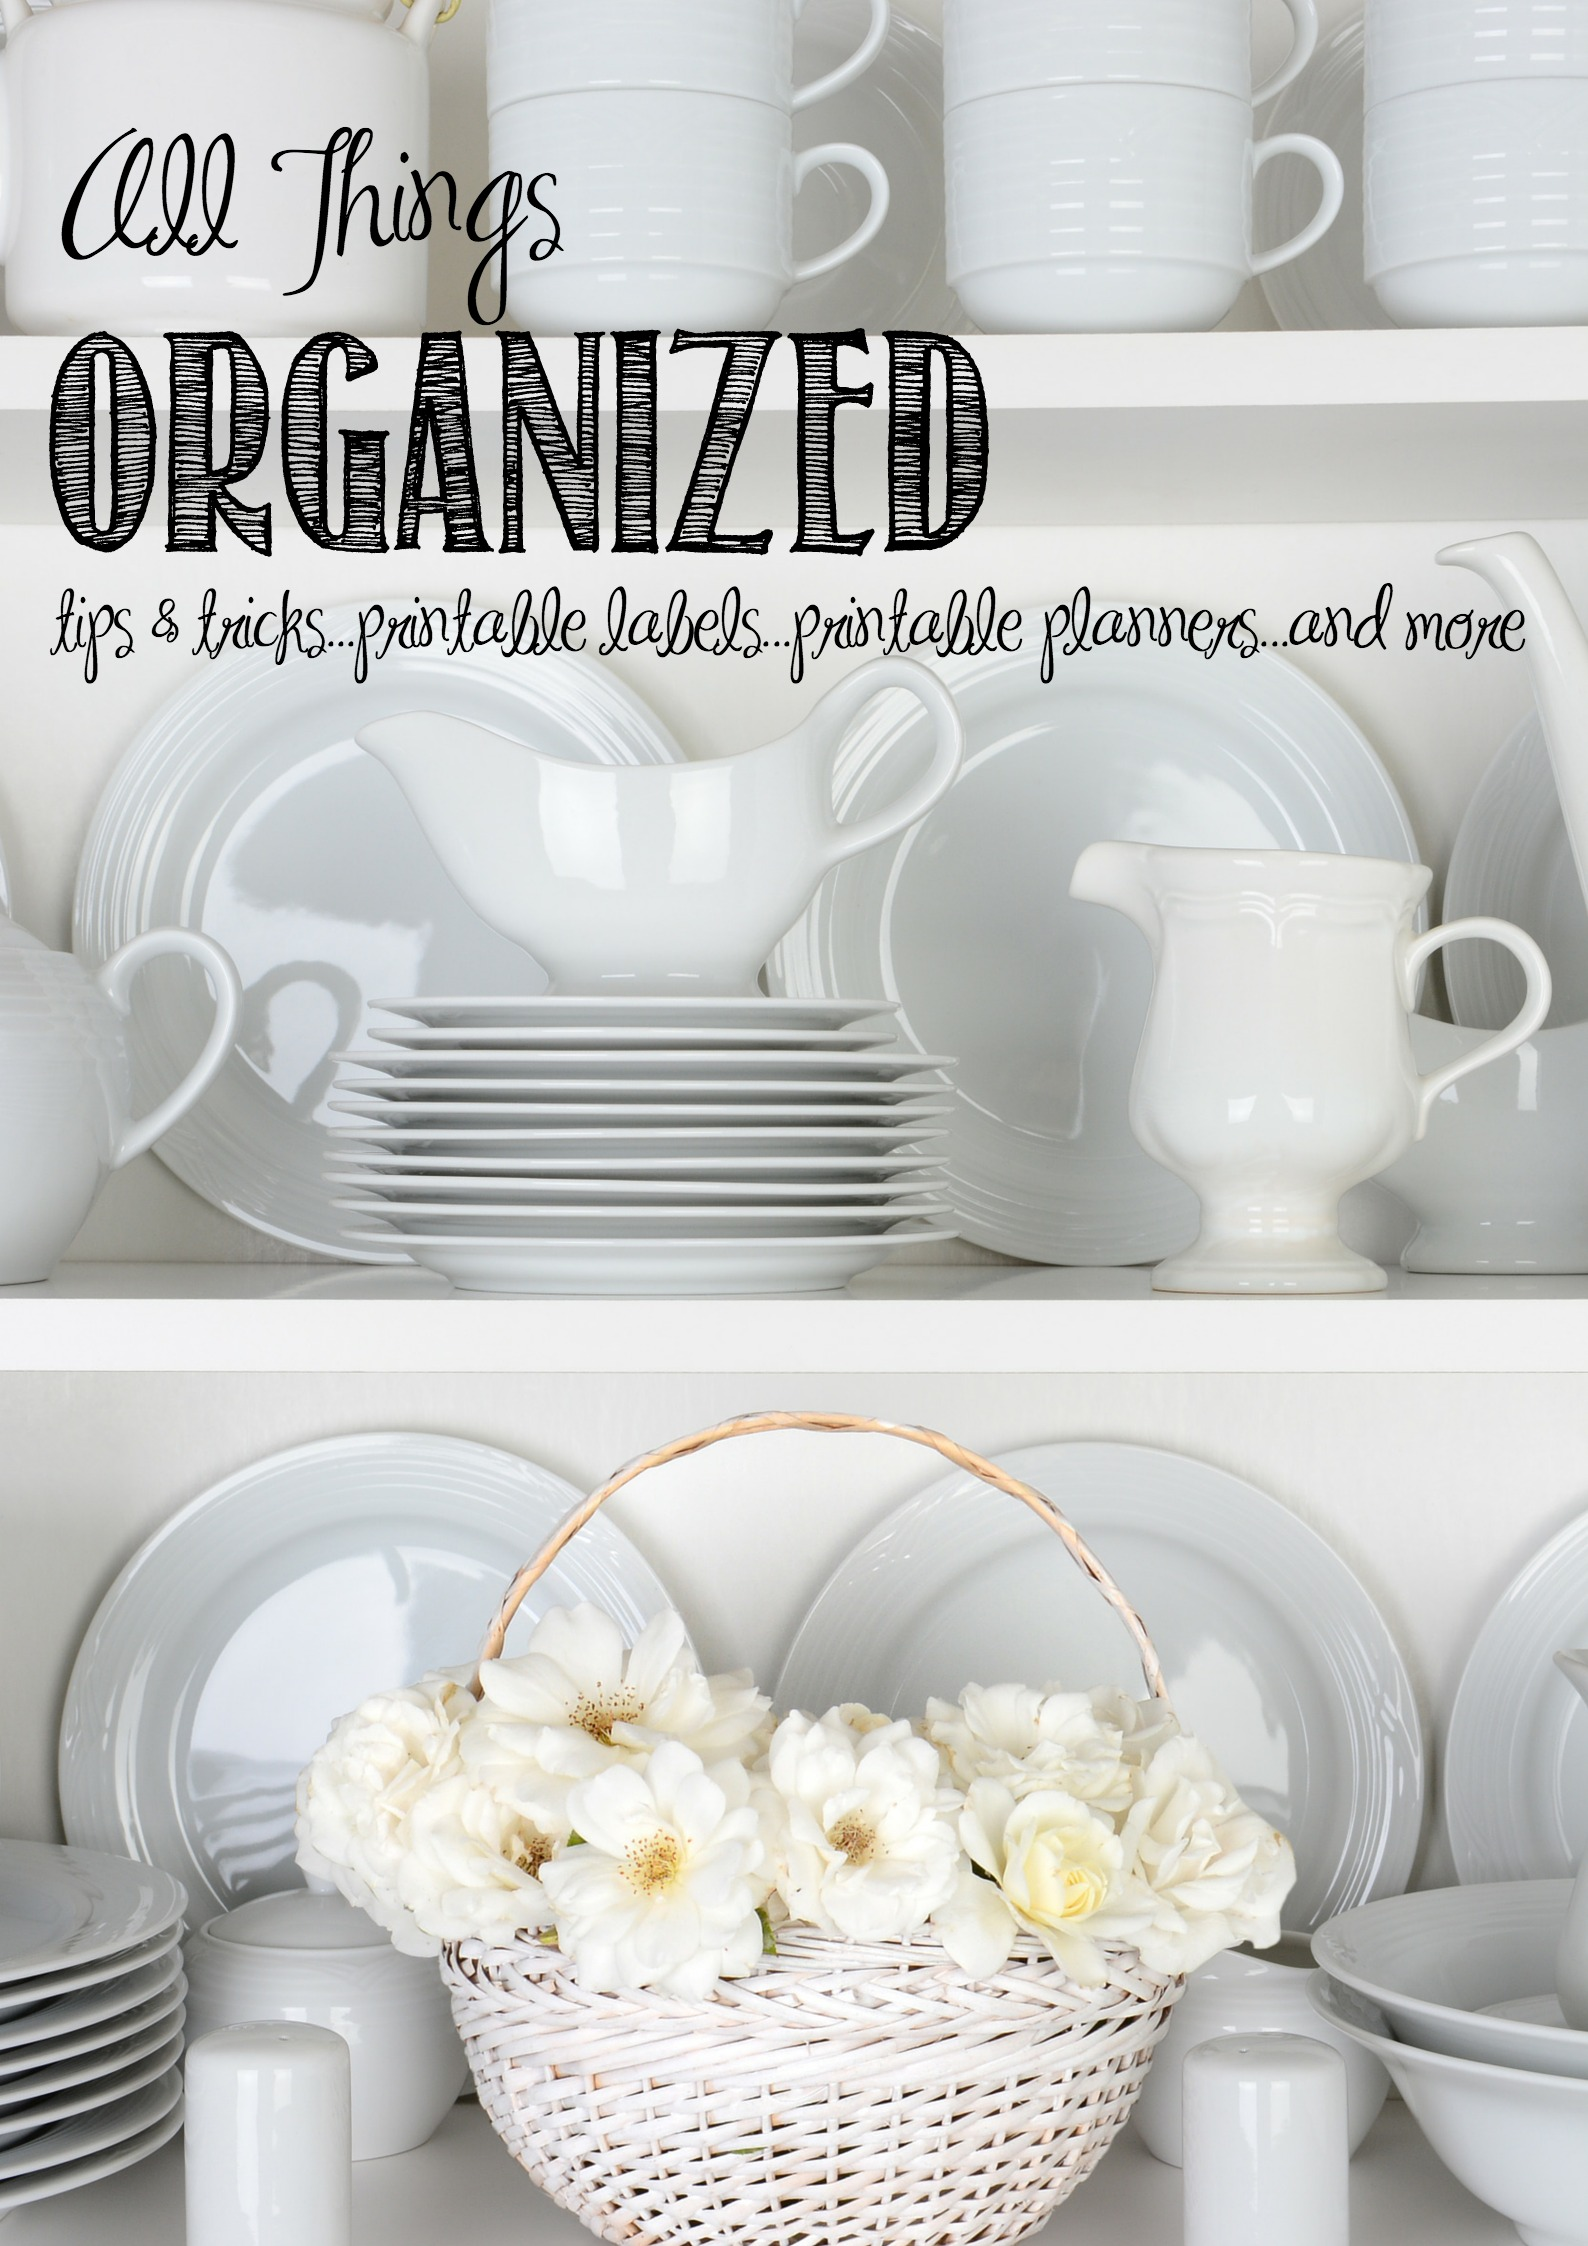 Organization, Cleaning, and Healthy Lifestyle Tips & Tricks